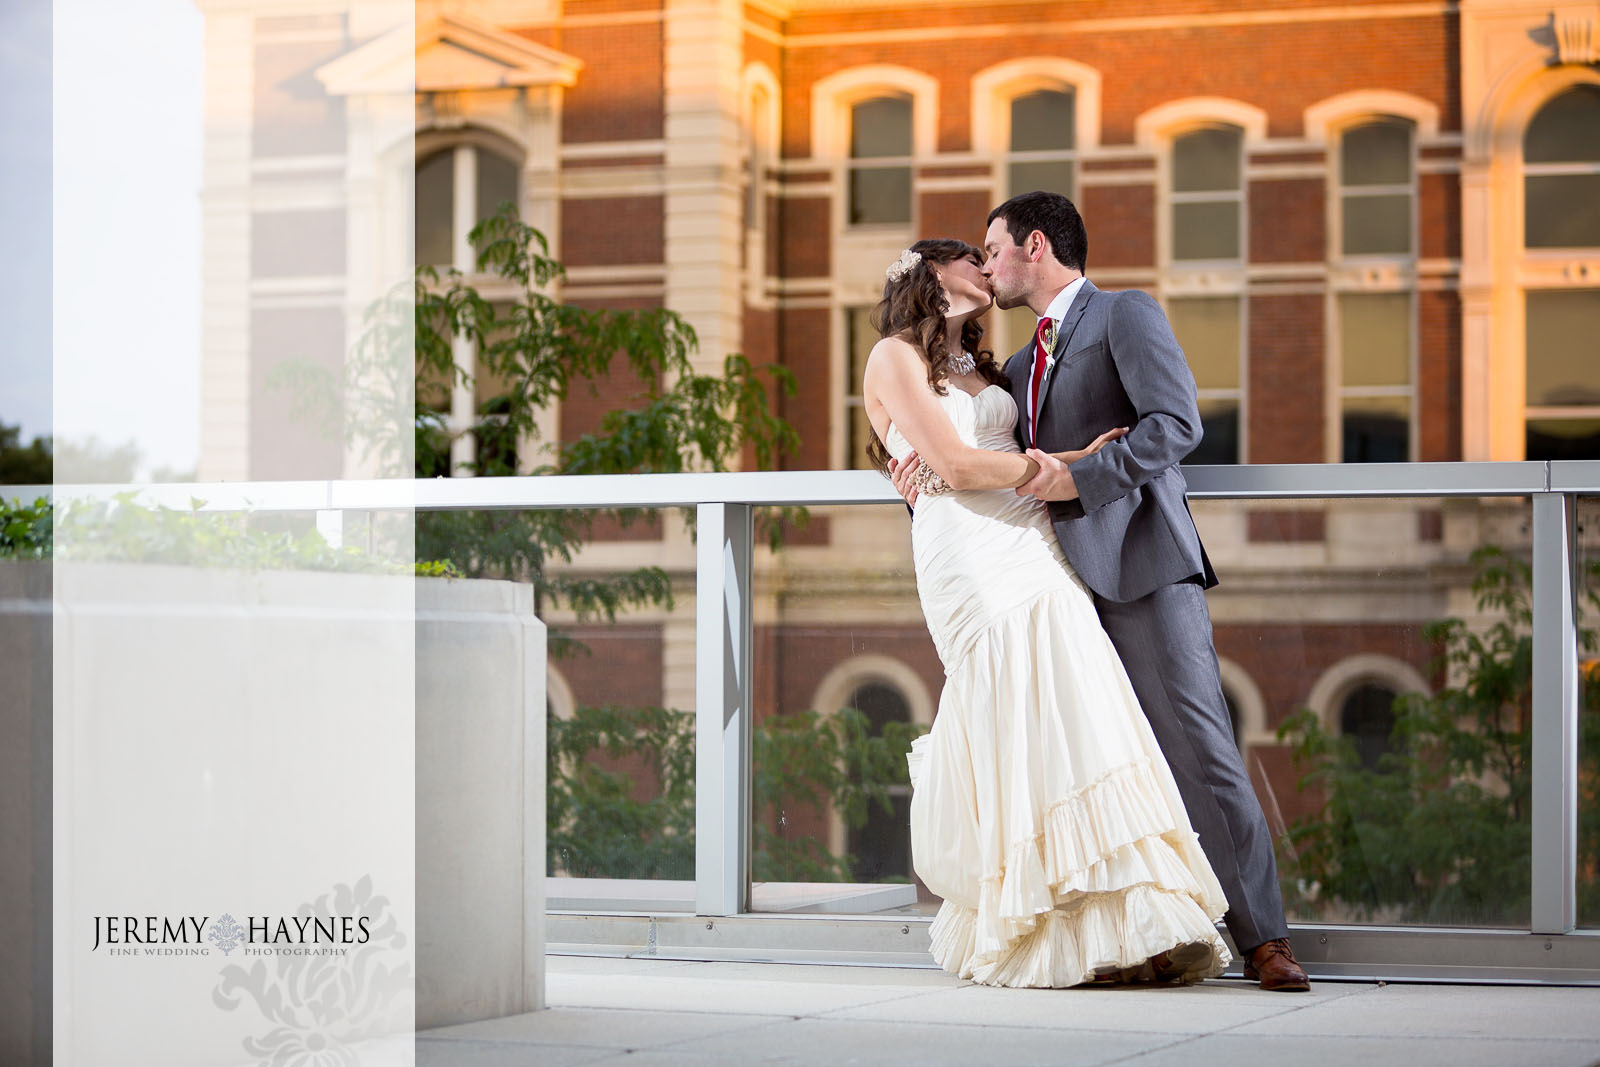 sunset-romantic-wedding-couple-jeremy-haynes-photography-the-commons-columbus.jpg